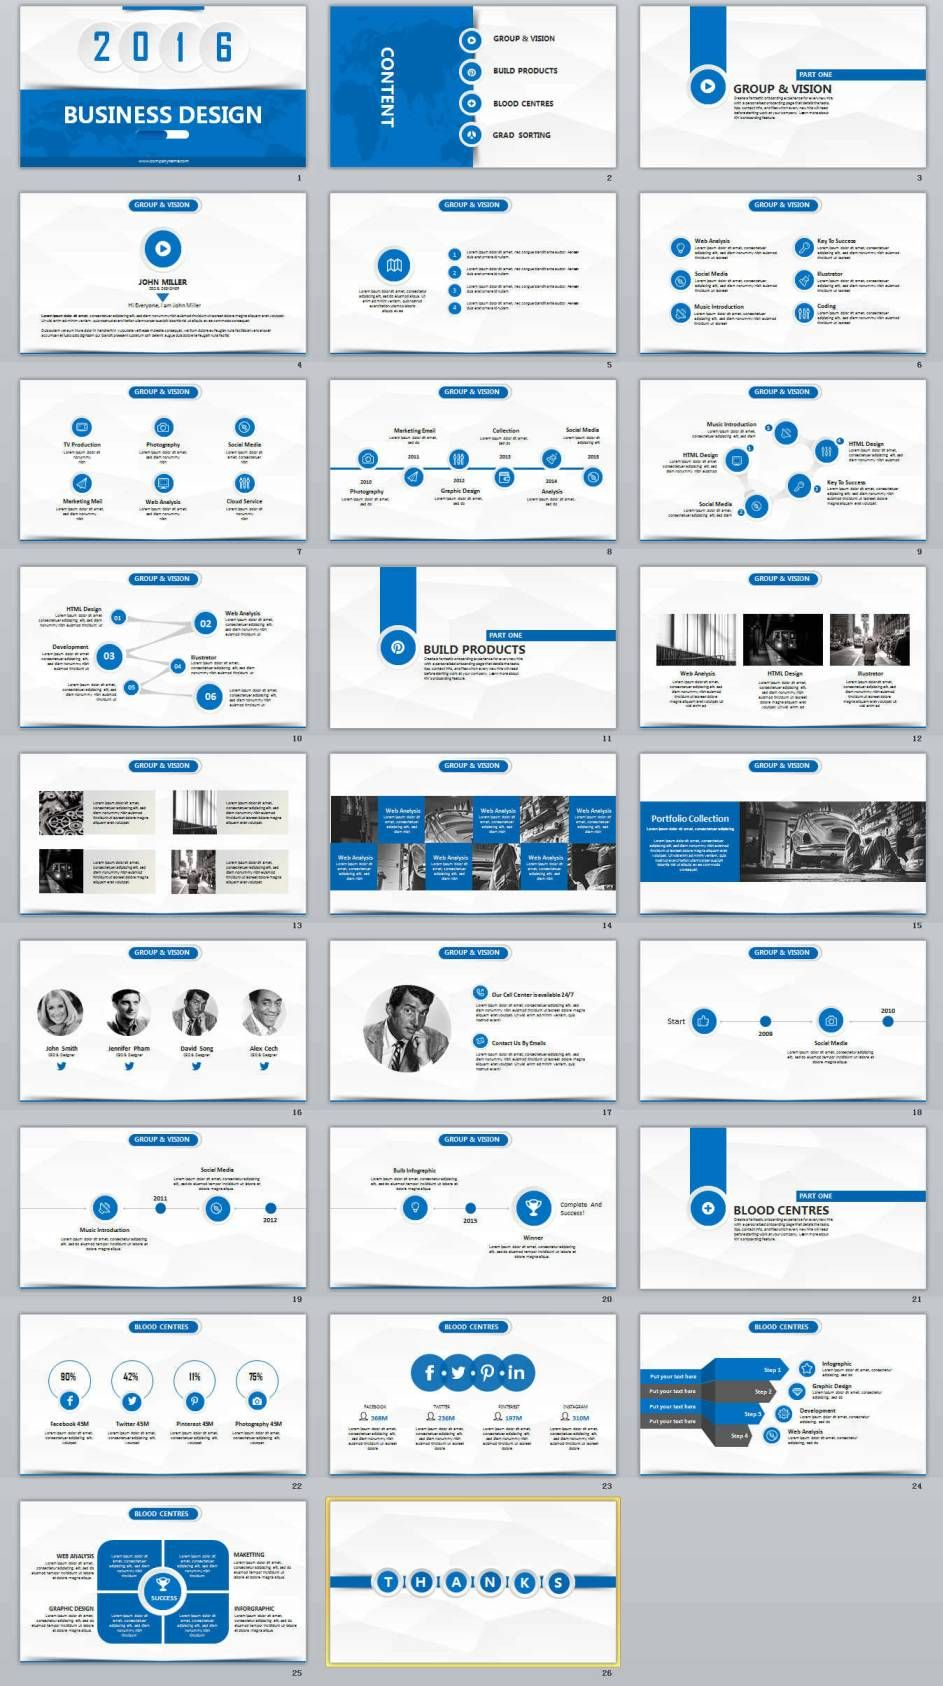 26 business design professional powerpoint templates apresentao 26 business design professional powerpoint templates powerpoint templates and keynote templates toneelgroepblik Choice Image